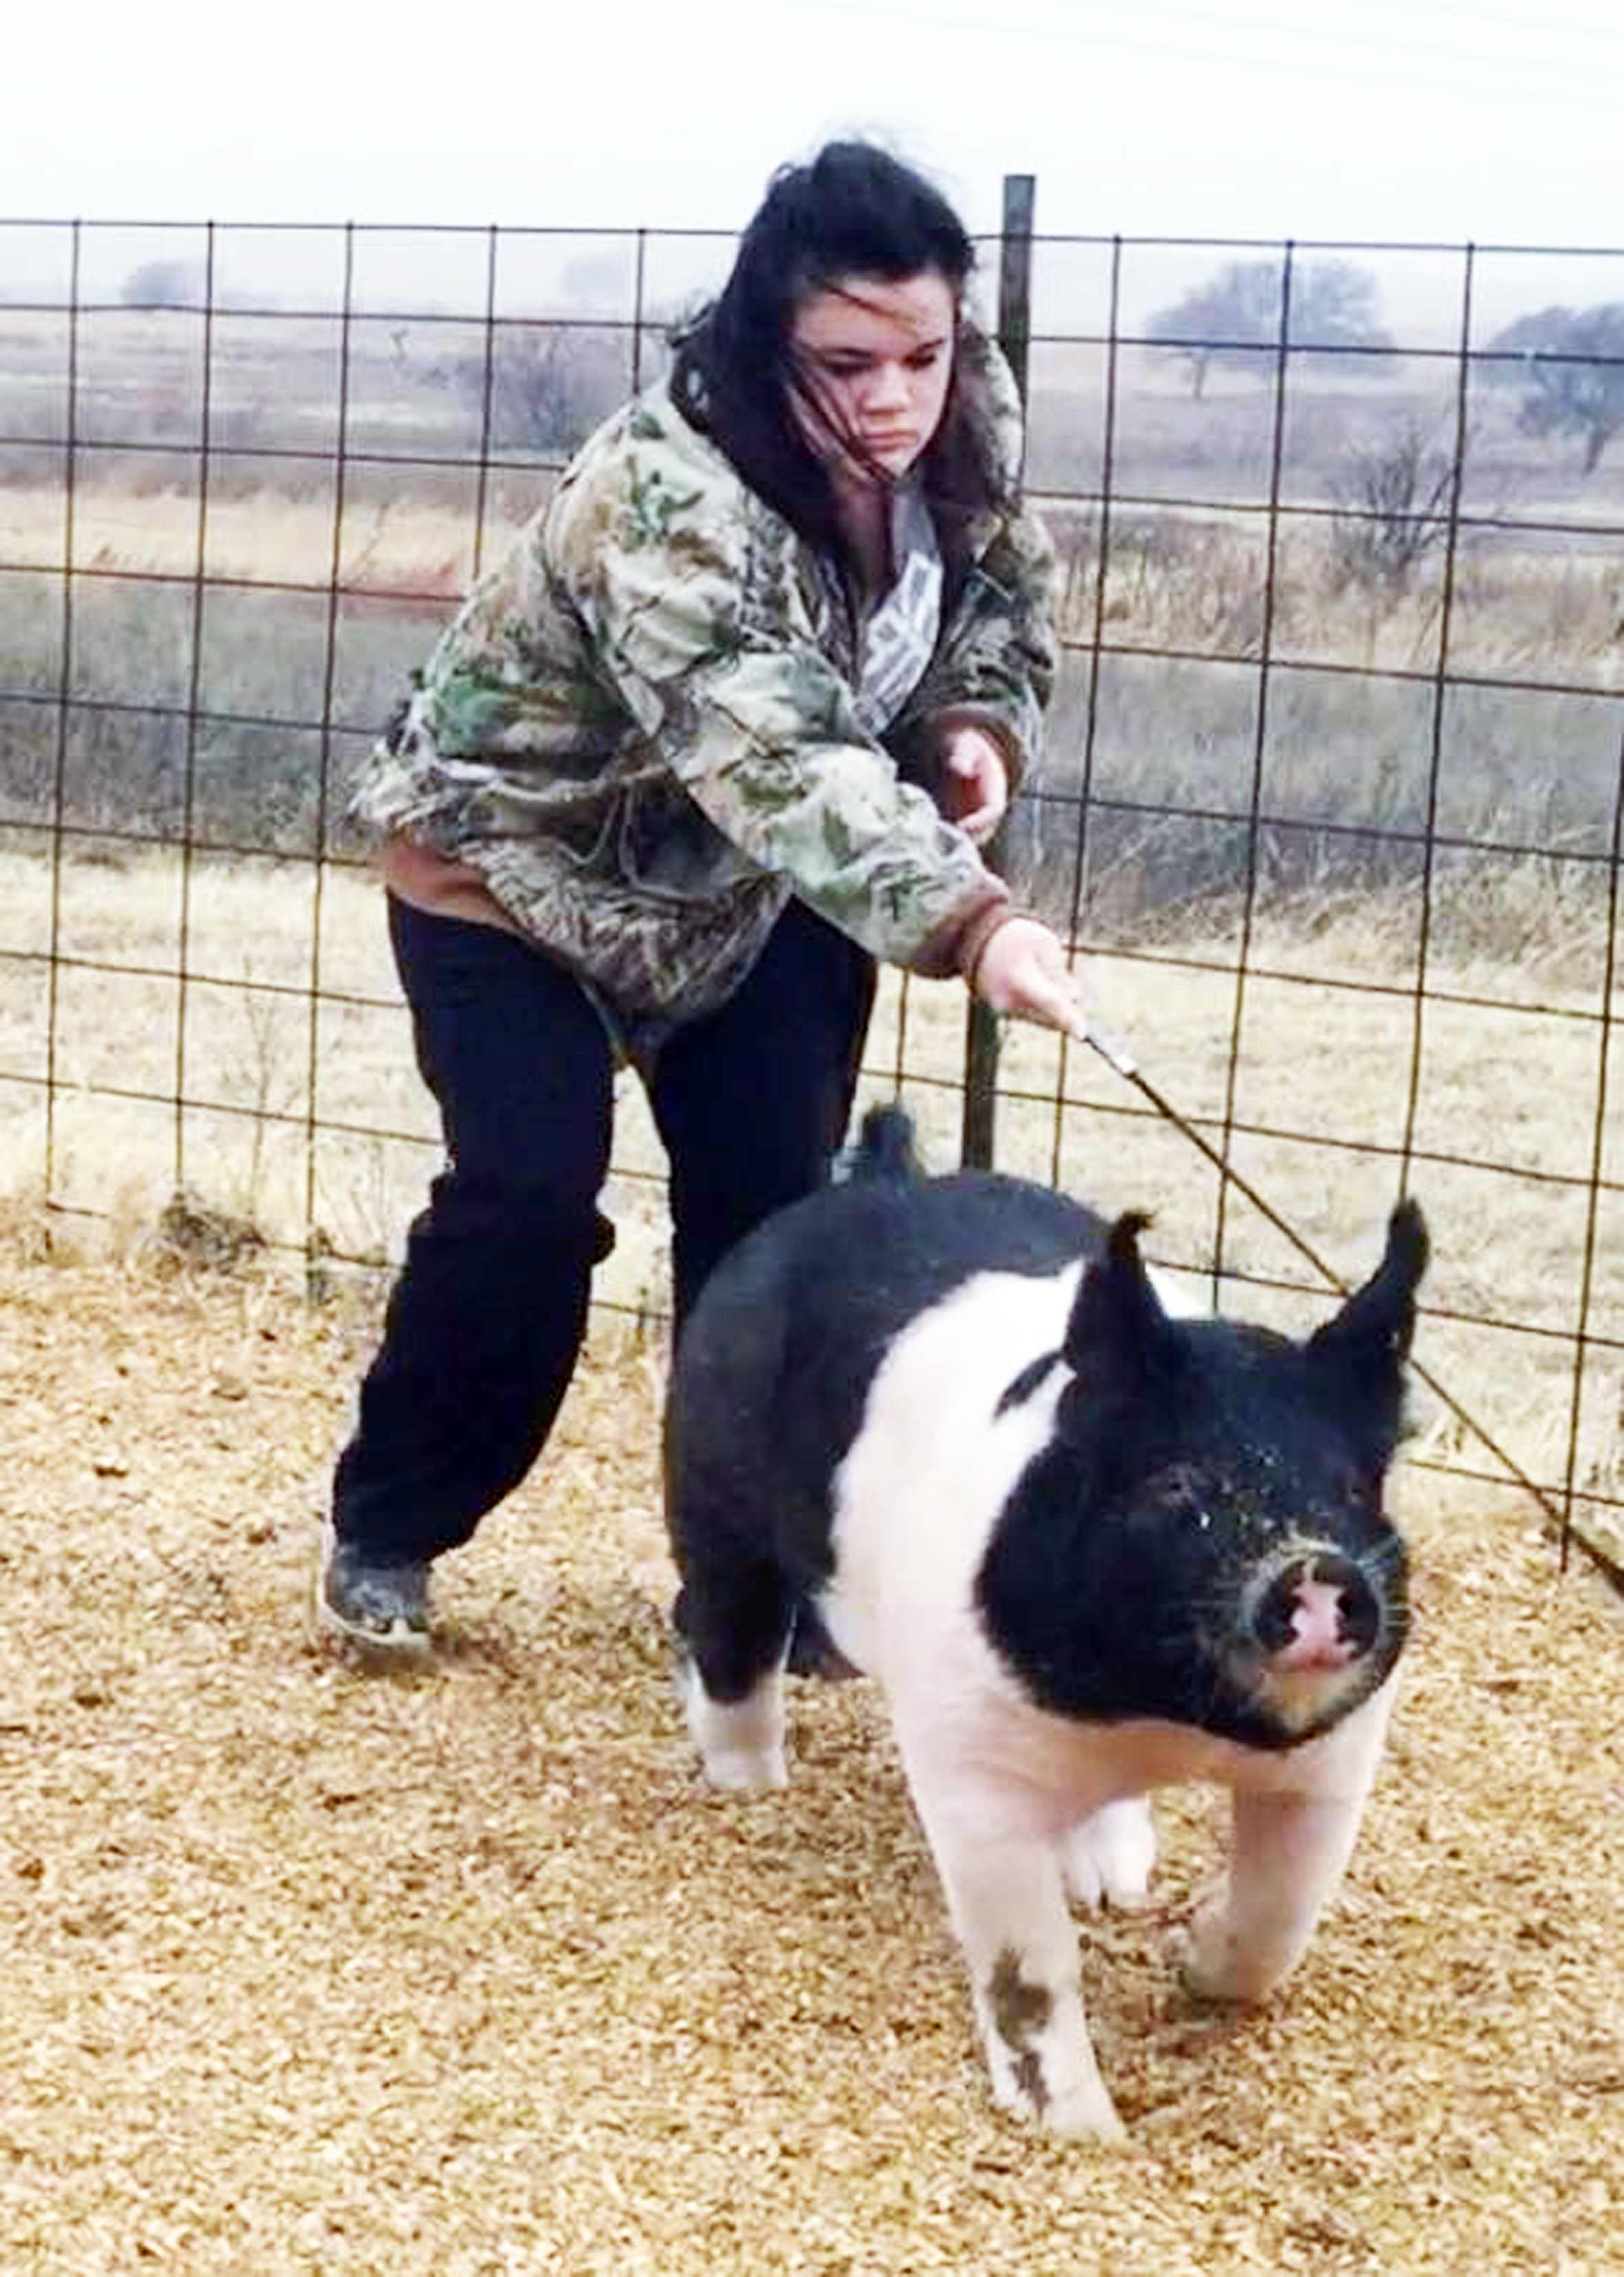 Jessica vogel working with pig